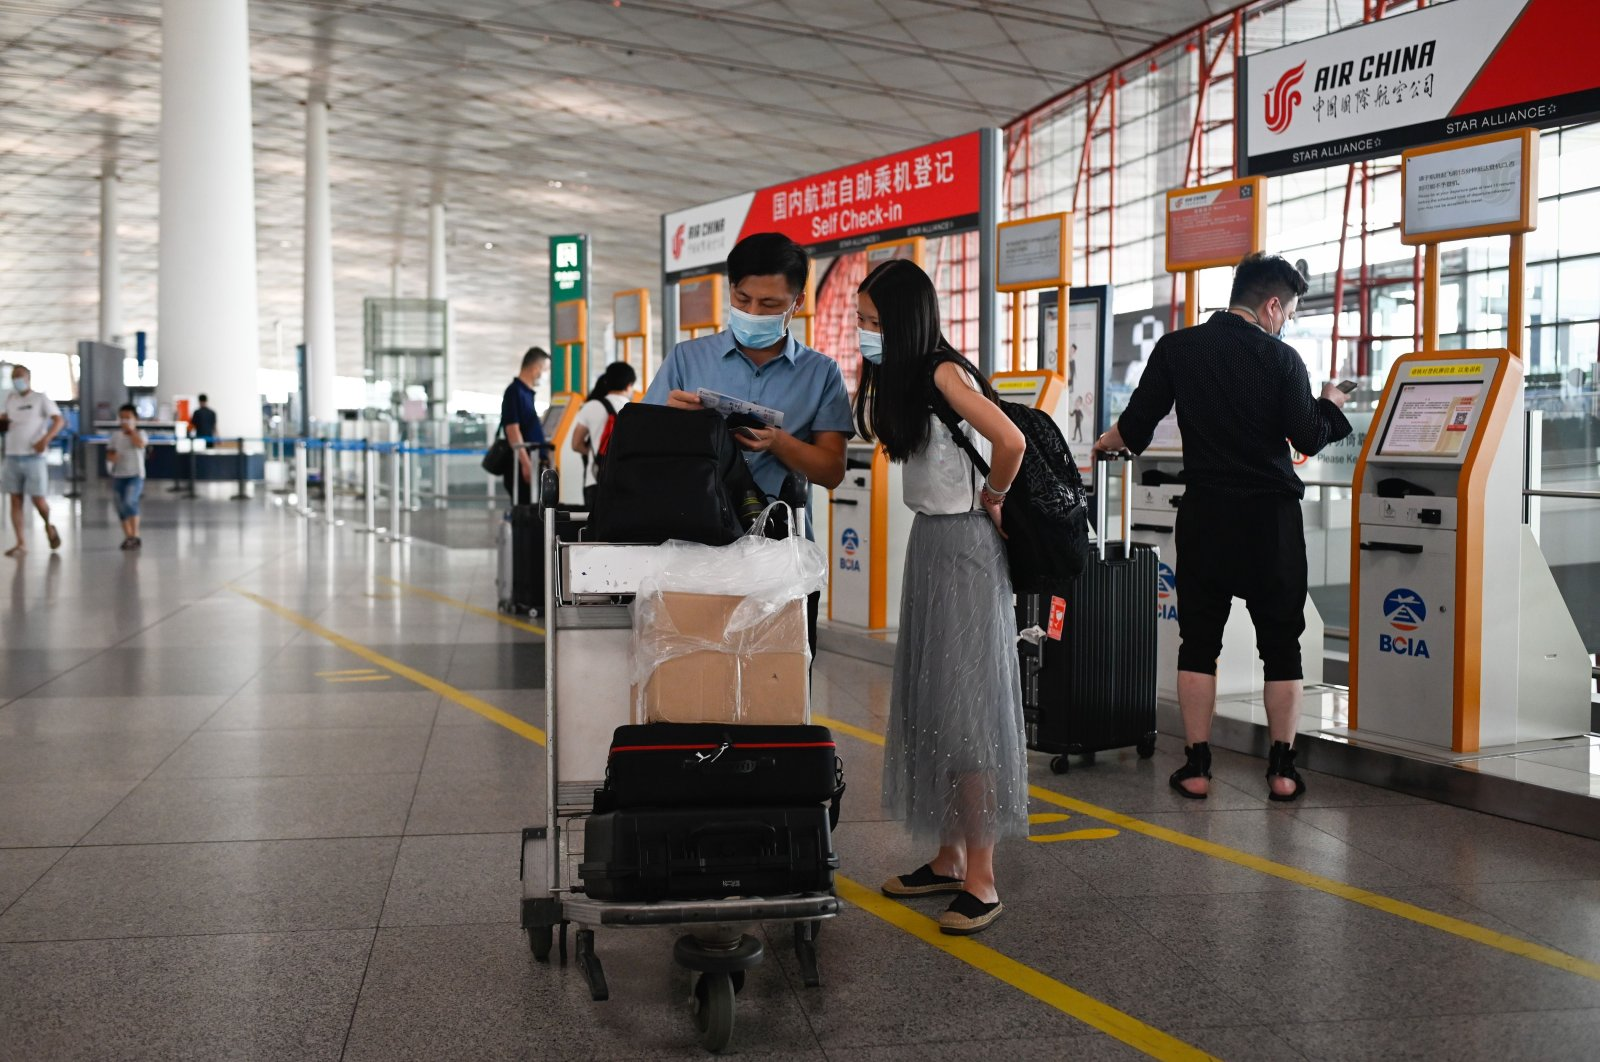 Travelers wearing face masks inspect their tickets after conducting self-check-in procedures at the Beijing International Airport, Beijing, China, June 17, 2020. (AFP Photo)